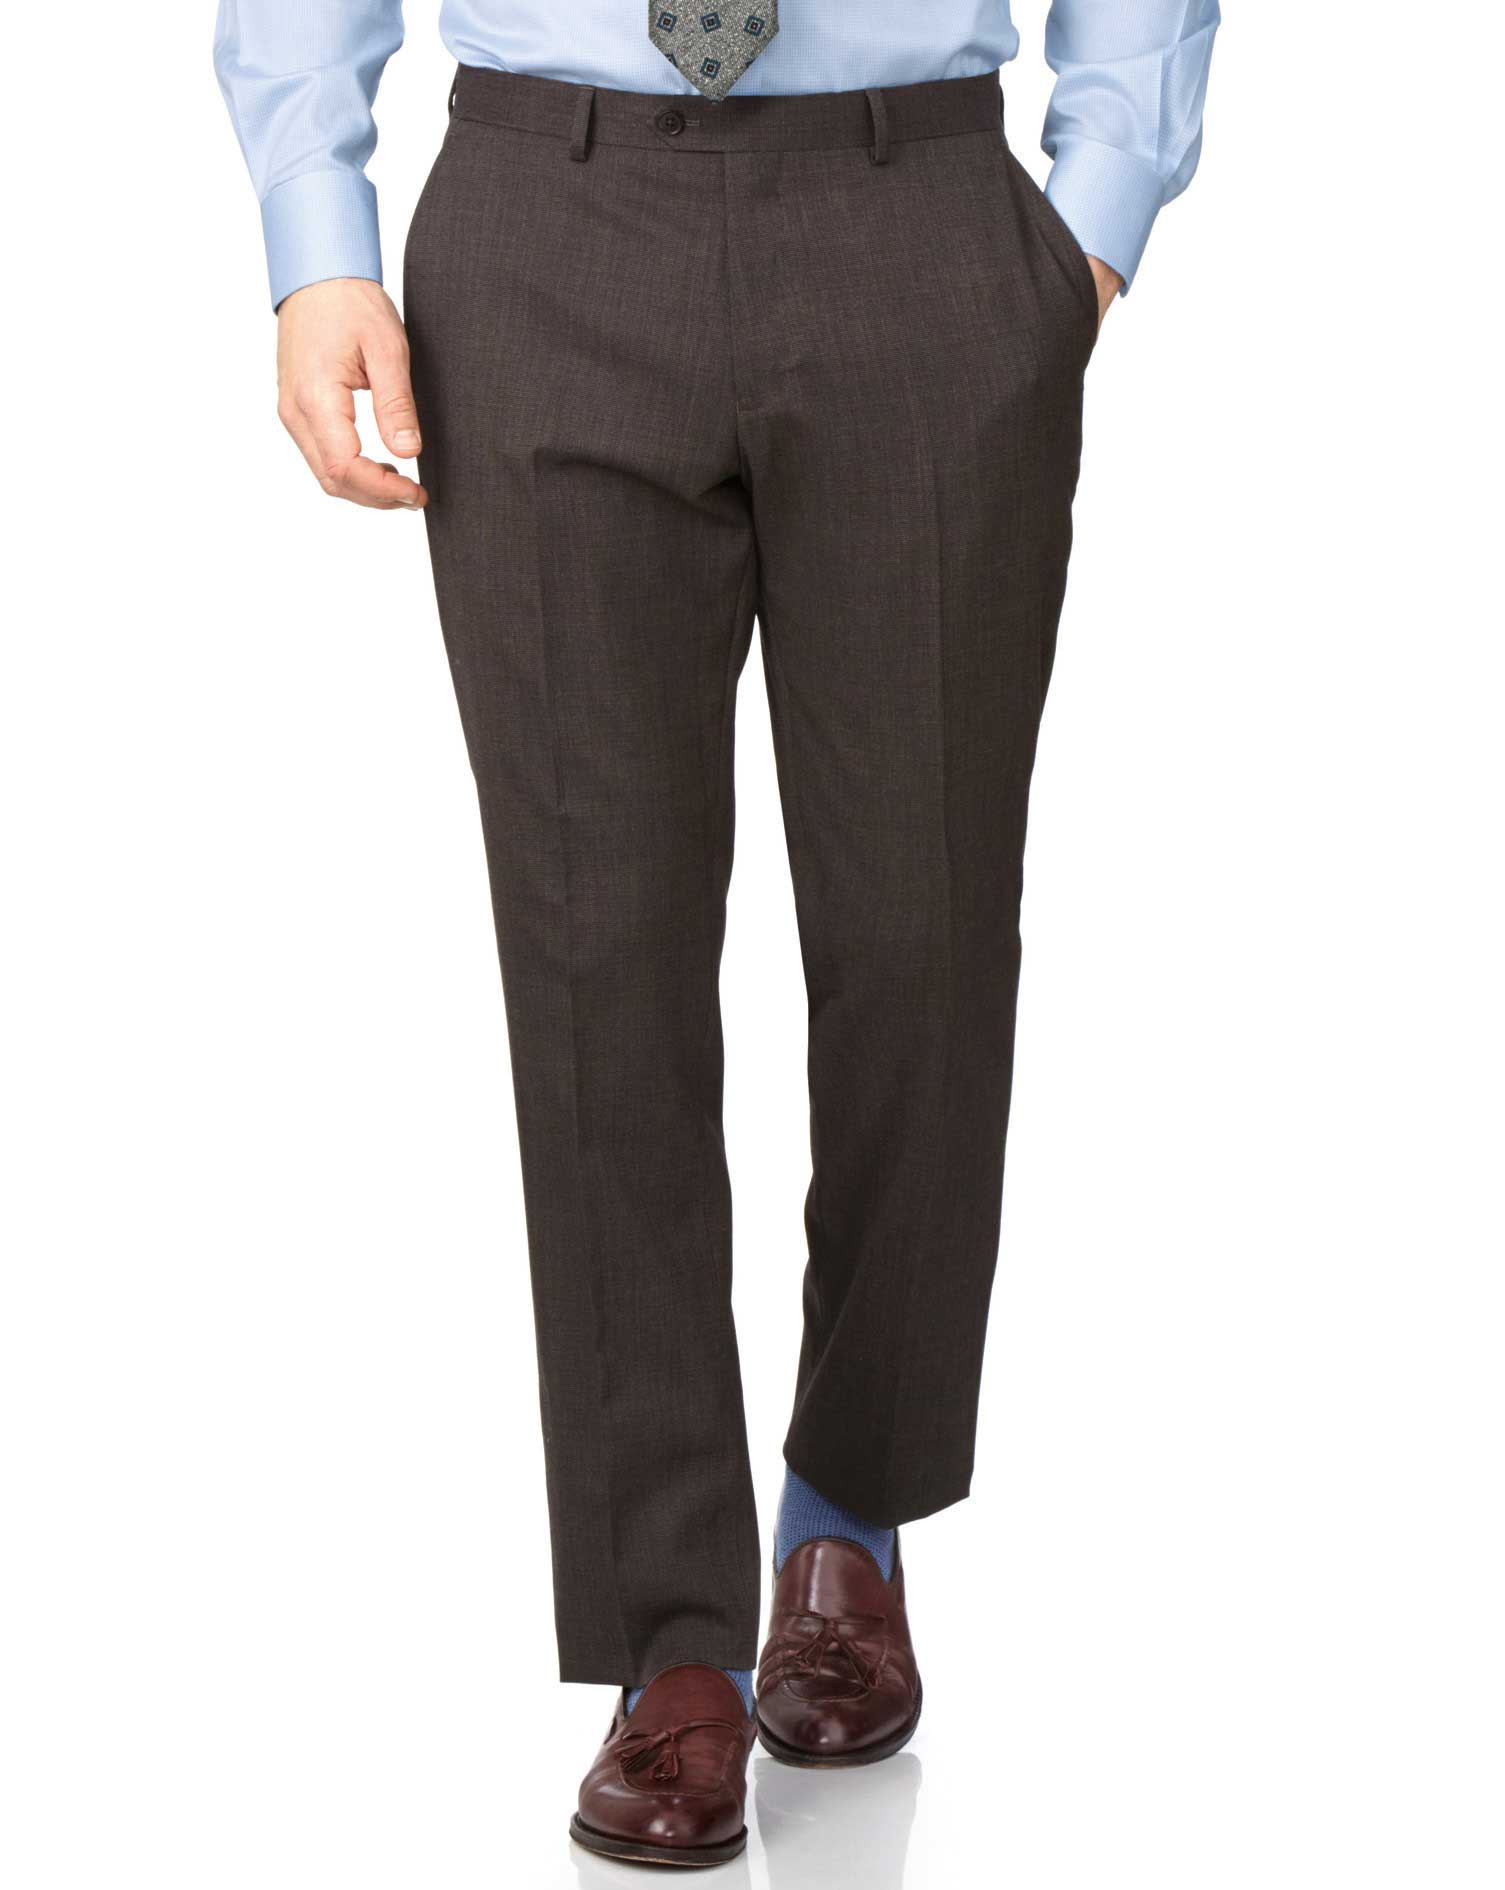 Brown Slim Fit End-On-End Business Suit Trouser Size W38 L32 by Charles Tyrwhitt